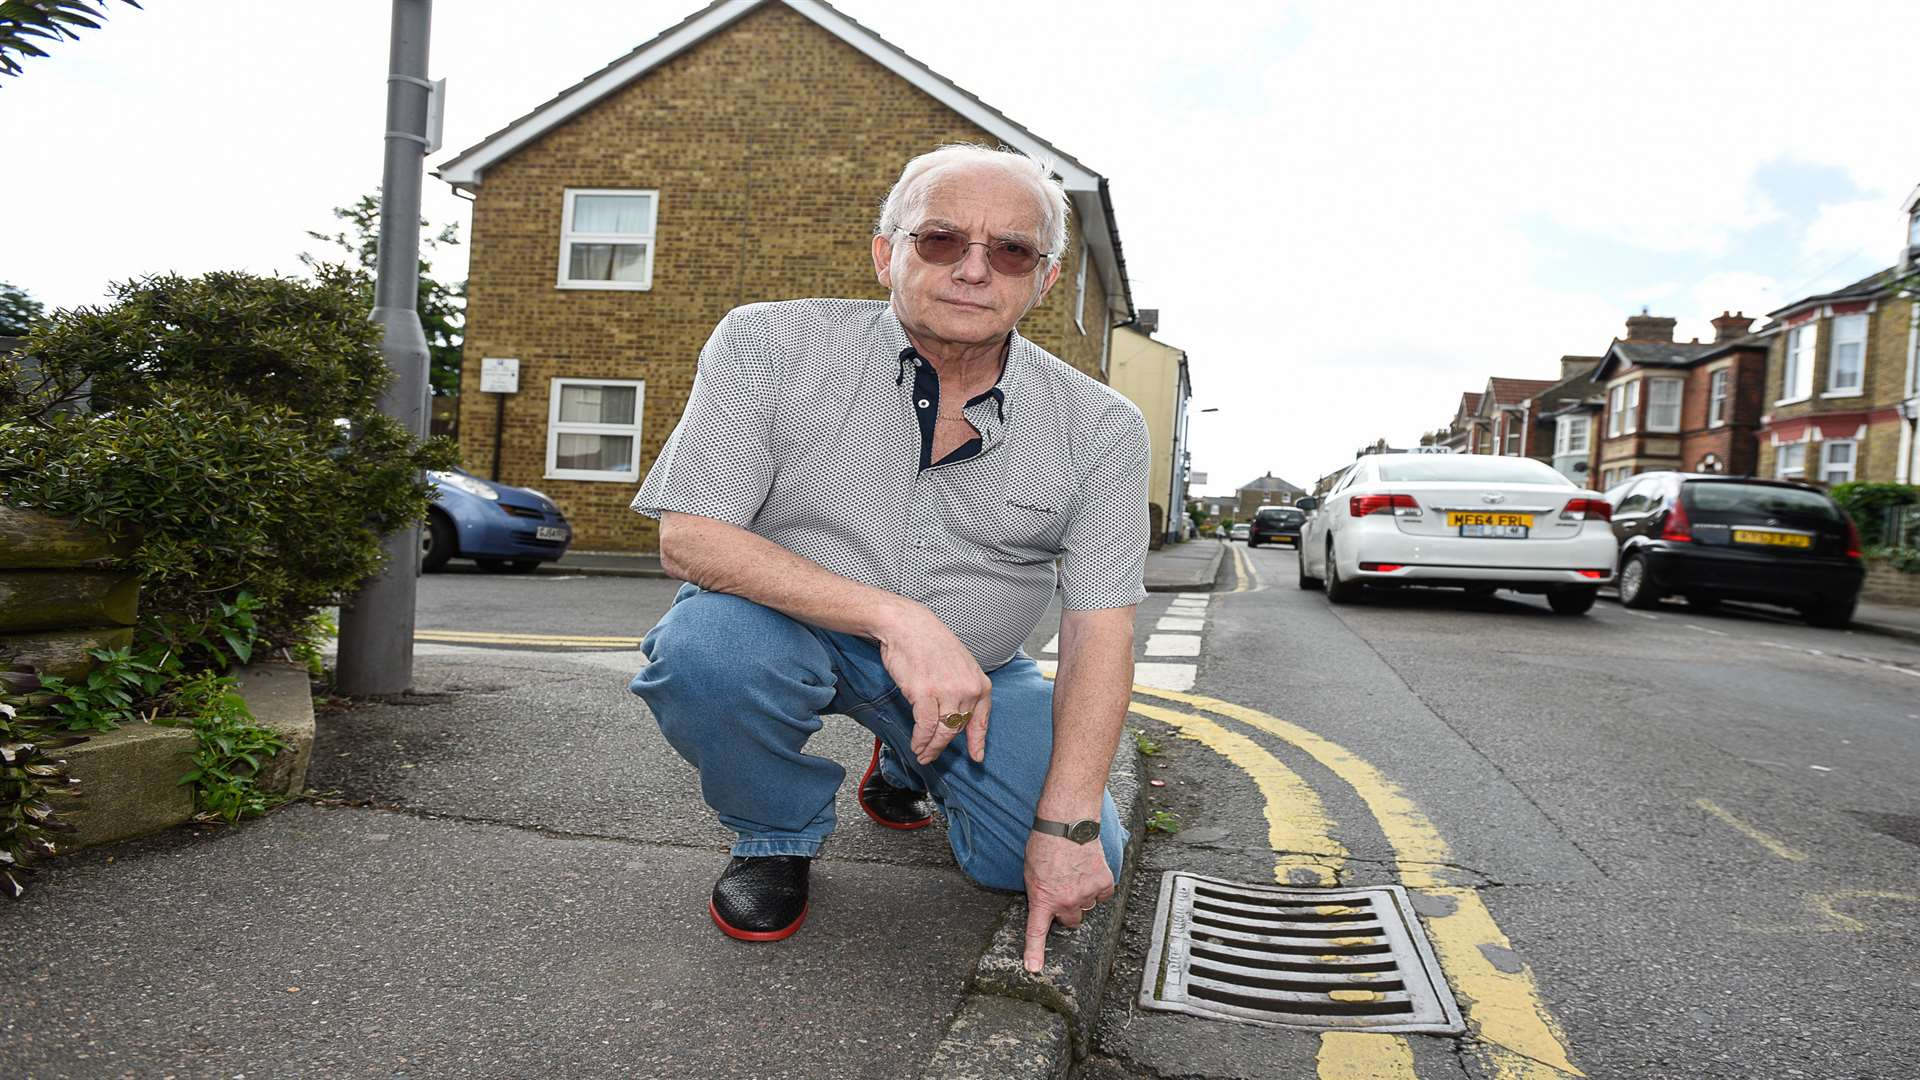 Pensioner Richard Sirot wins payout for fall in Deal, but ...